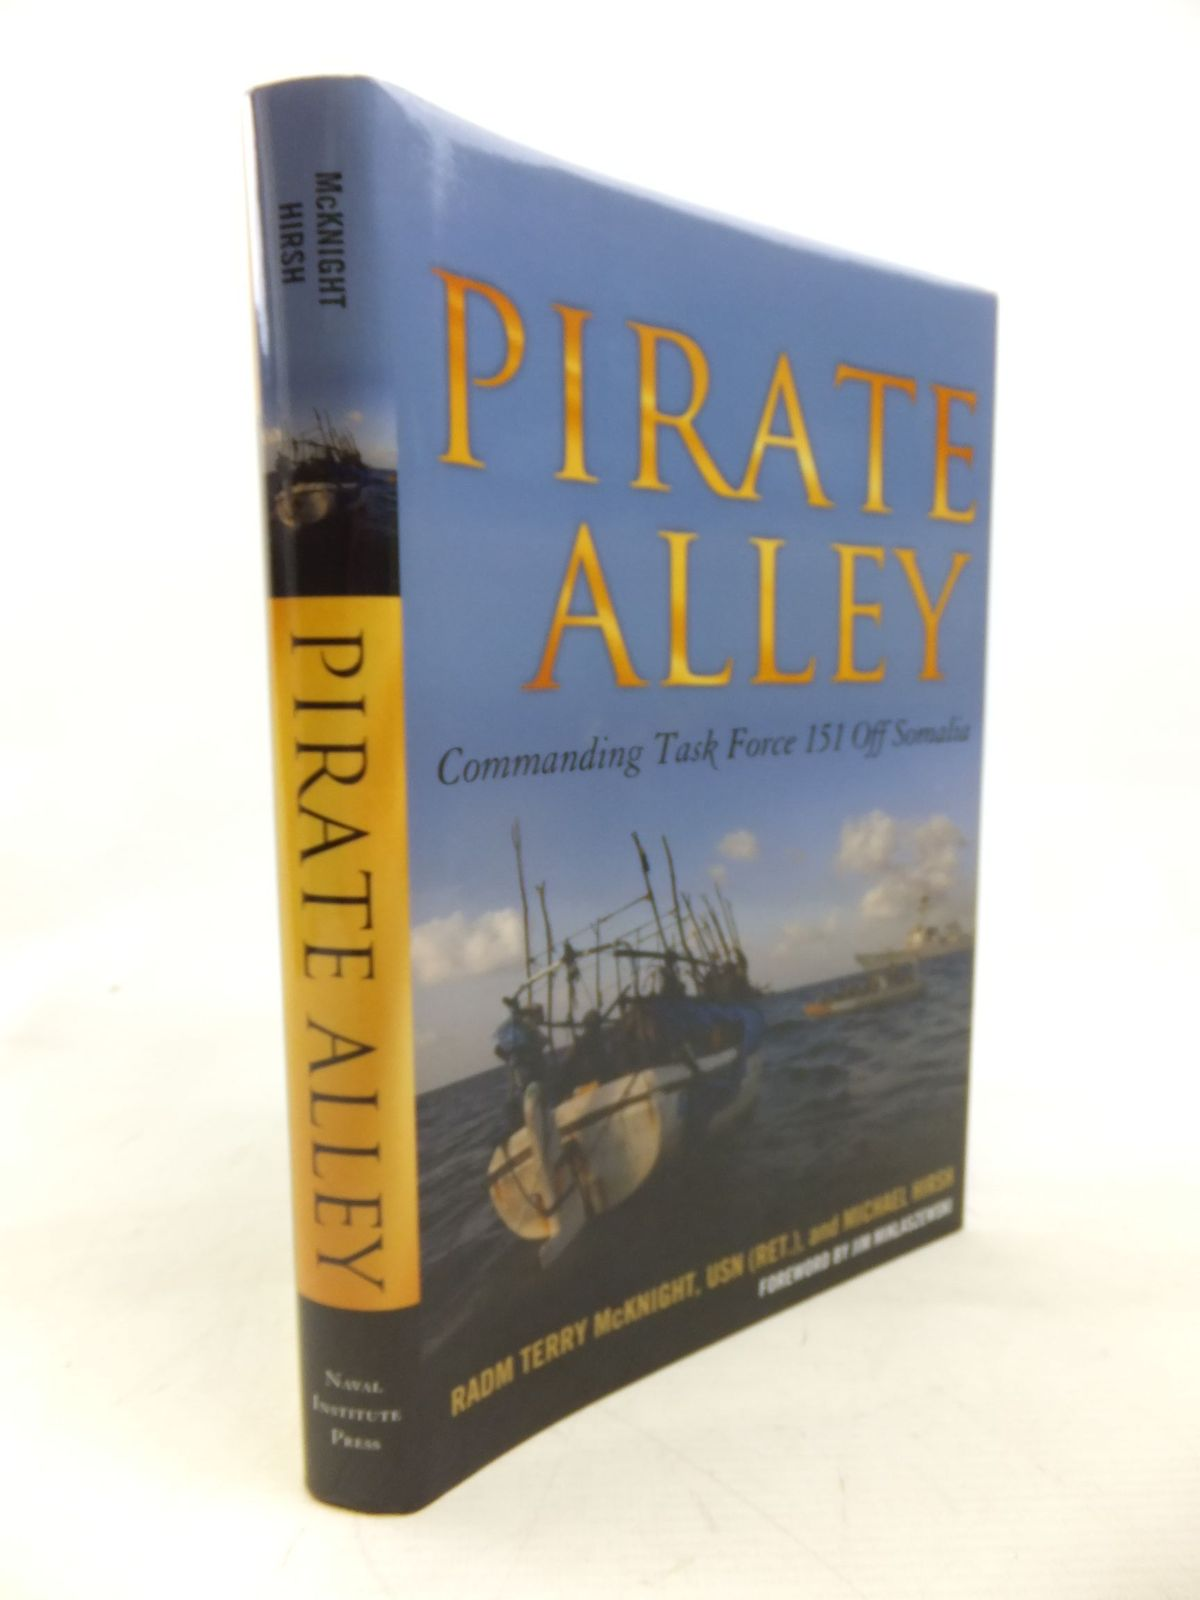 Photo of PIRATE ALLEY COMMANDING TASK FORCE 151 OFF SOMALIA written by McKnight, Radm Terry Hirsh, Michael published by Naval Institute Press (STOCK CODE: 2116150)  for sale by Stella & Rose's Books